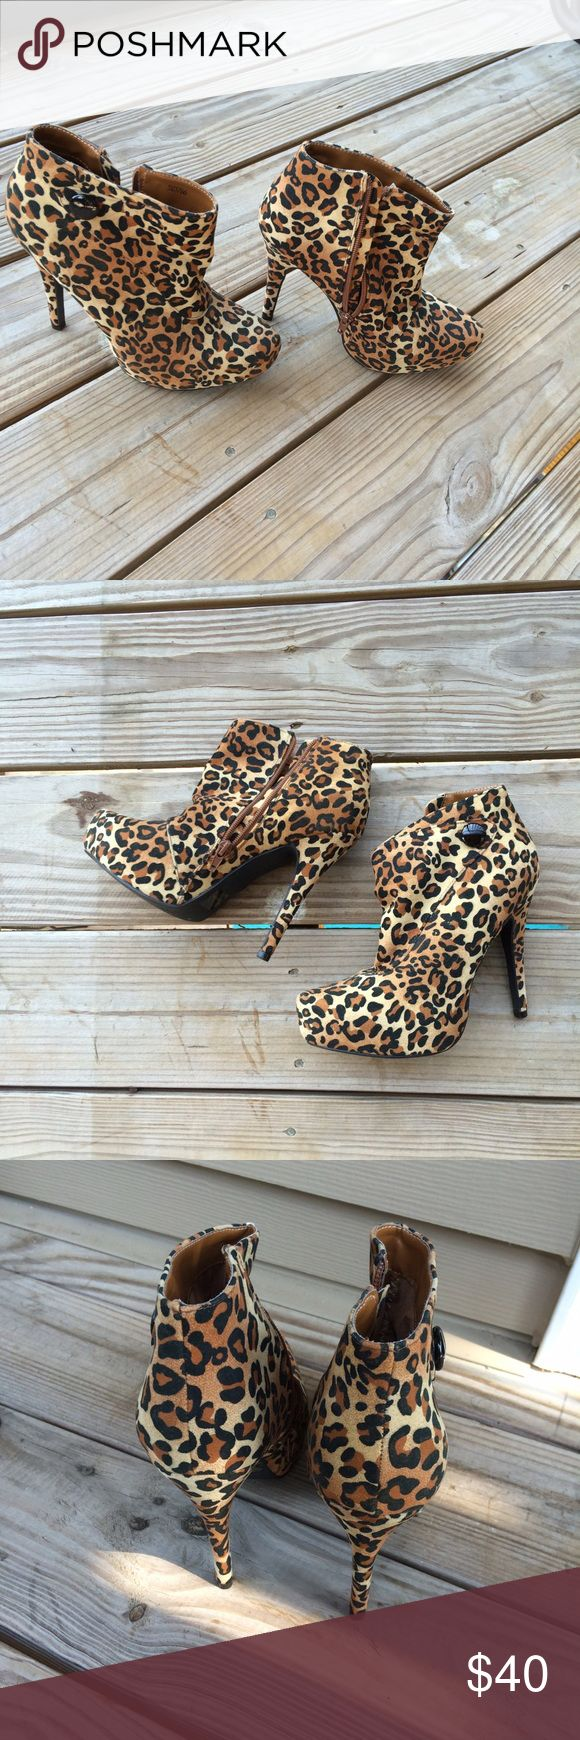 Vintage Leopard Ankle Boots ⭐️⭐️⭐️⭐️⭐️⭐️ Vintage Leopard Ankle boots with cute button detail. Pristine condition, barely ever worn. Kept in a collection of 100+ shoes. Shoes Ankle Boots & Booties